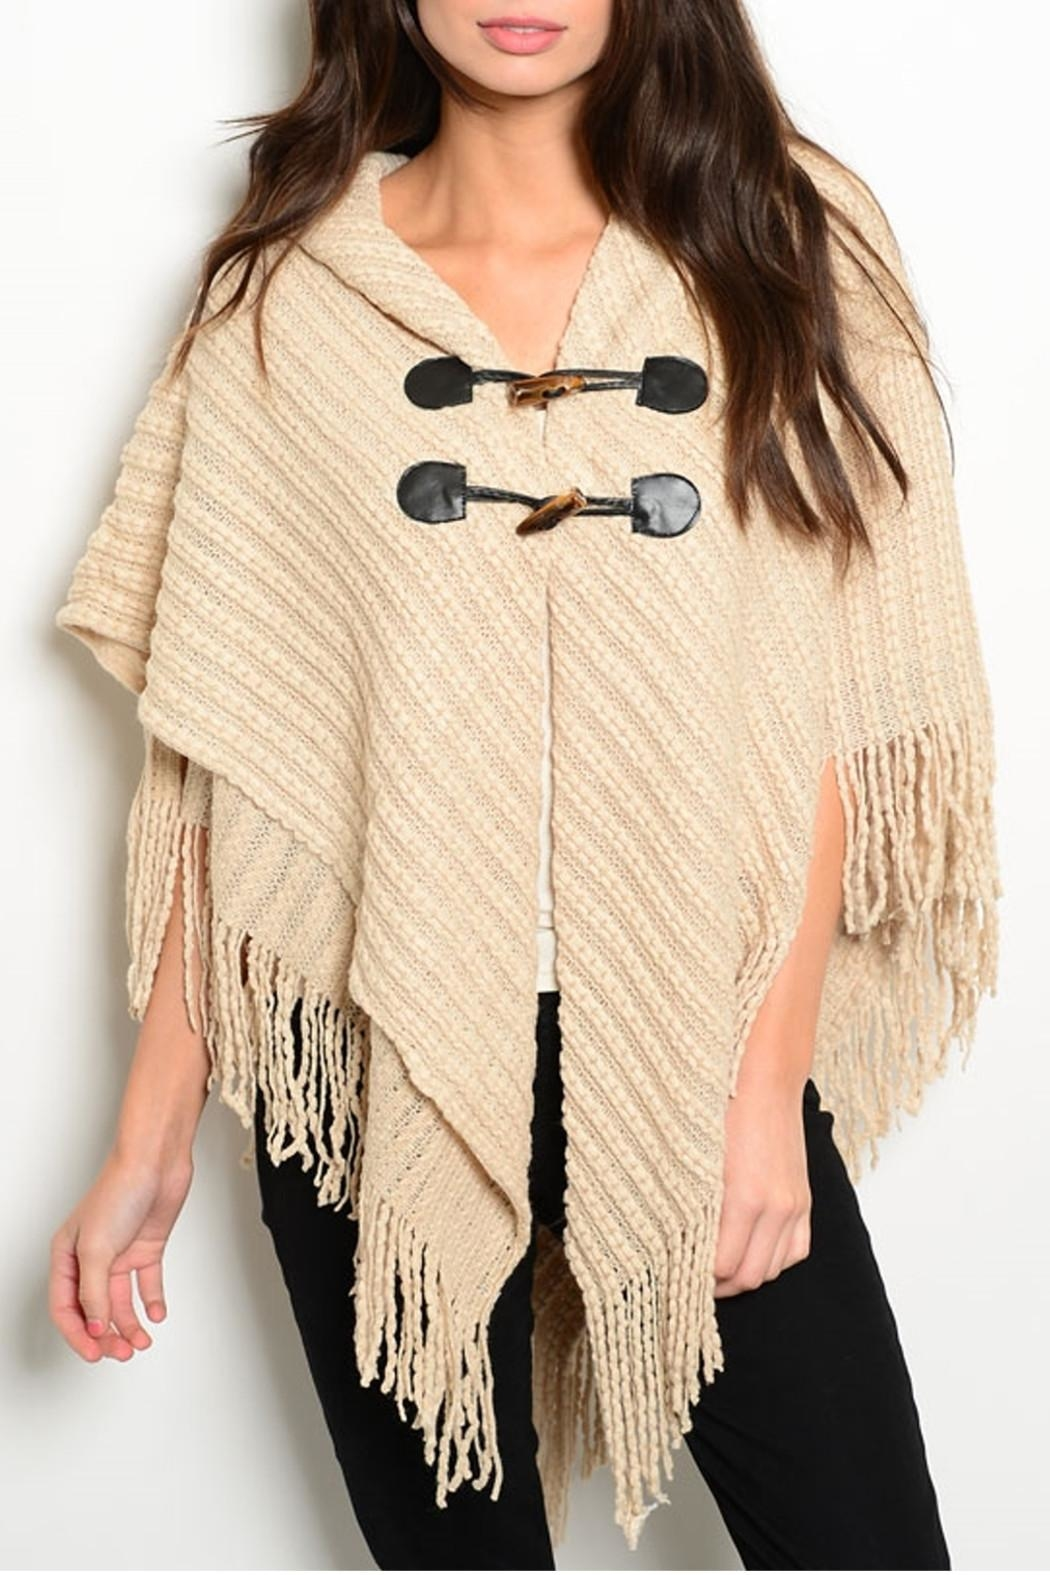 MS Accessories Fringes Beige Poncho - Main Image